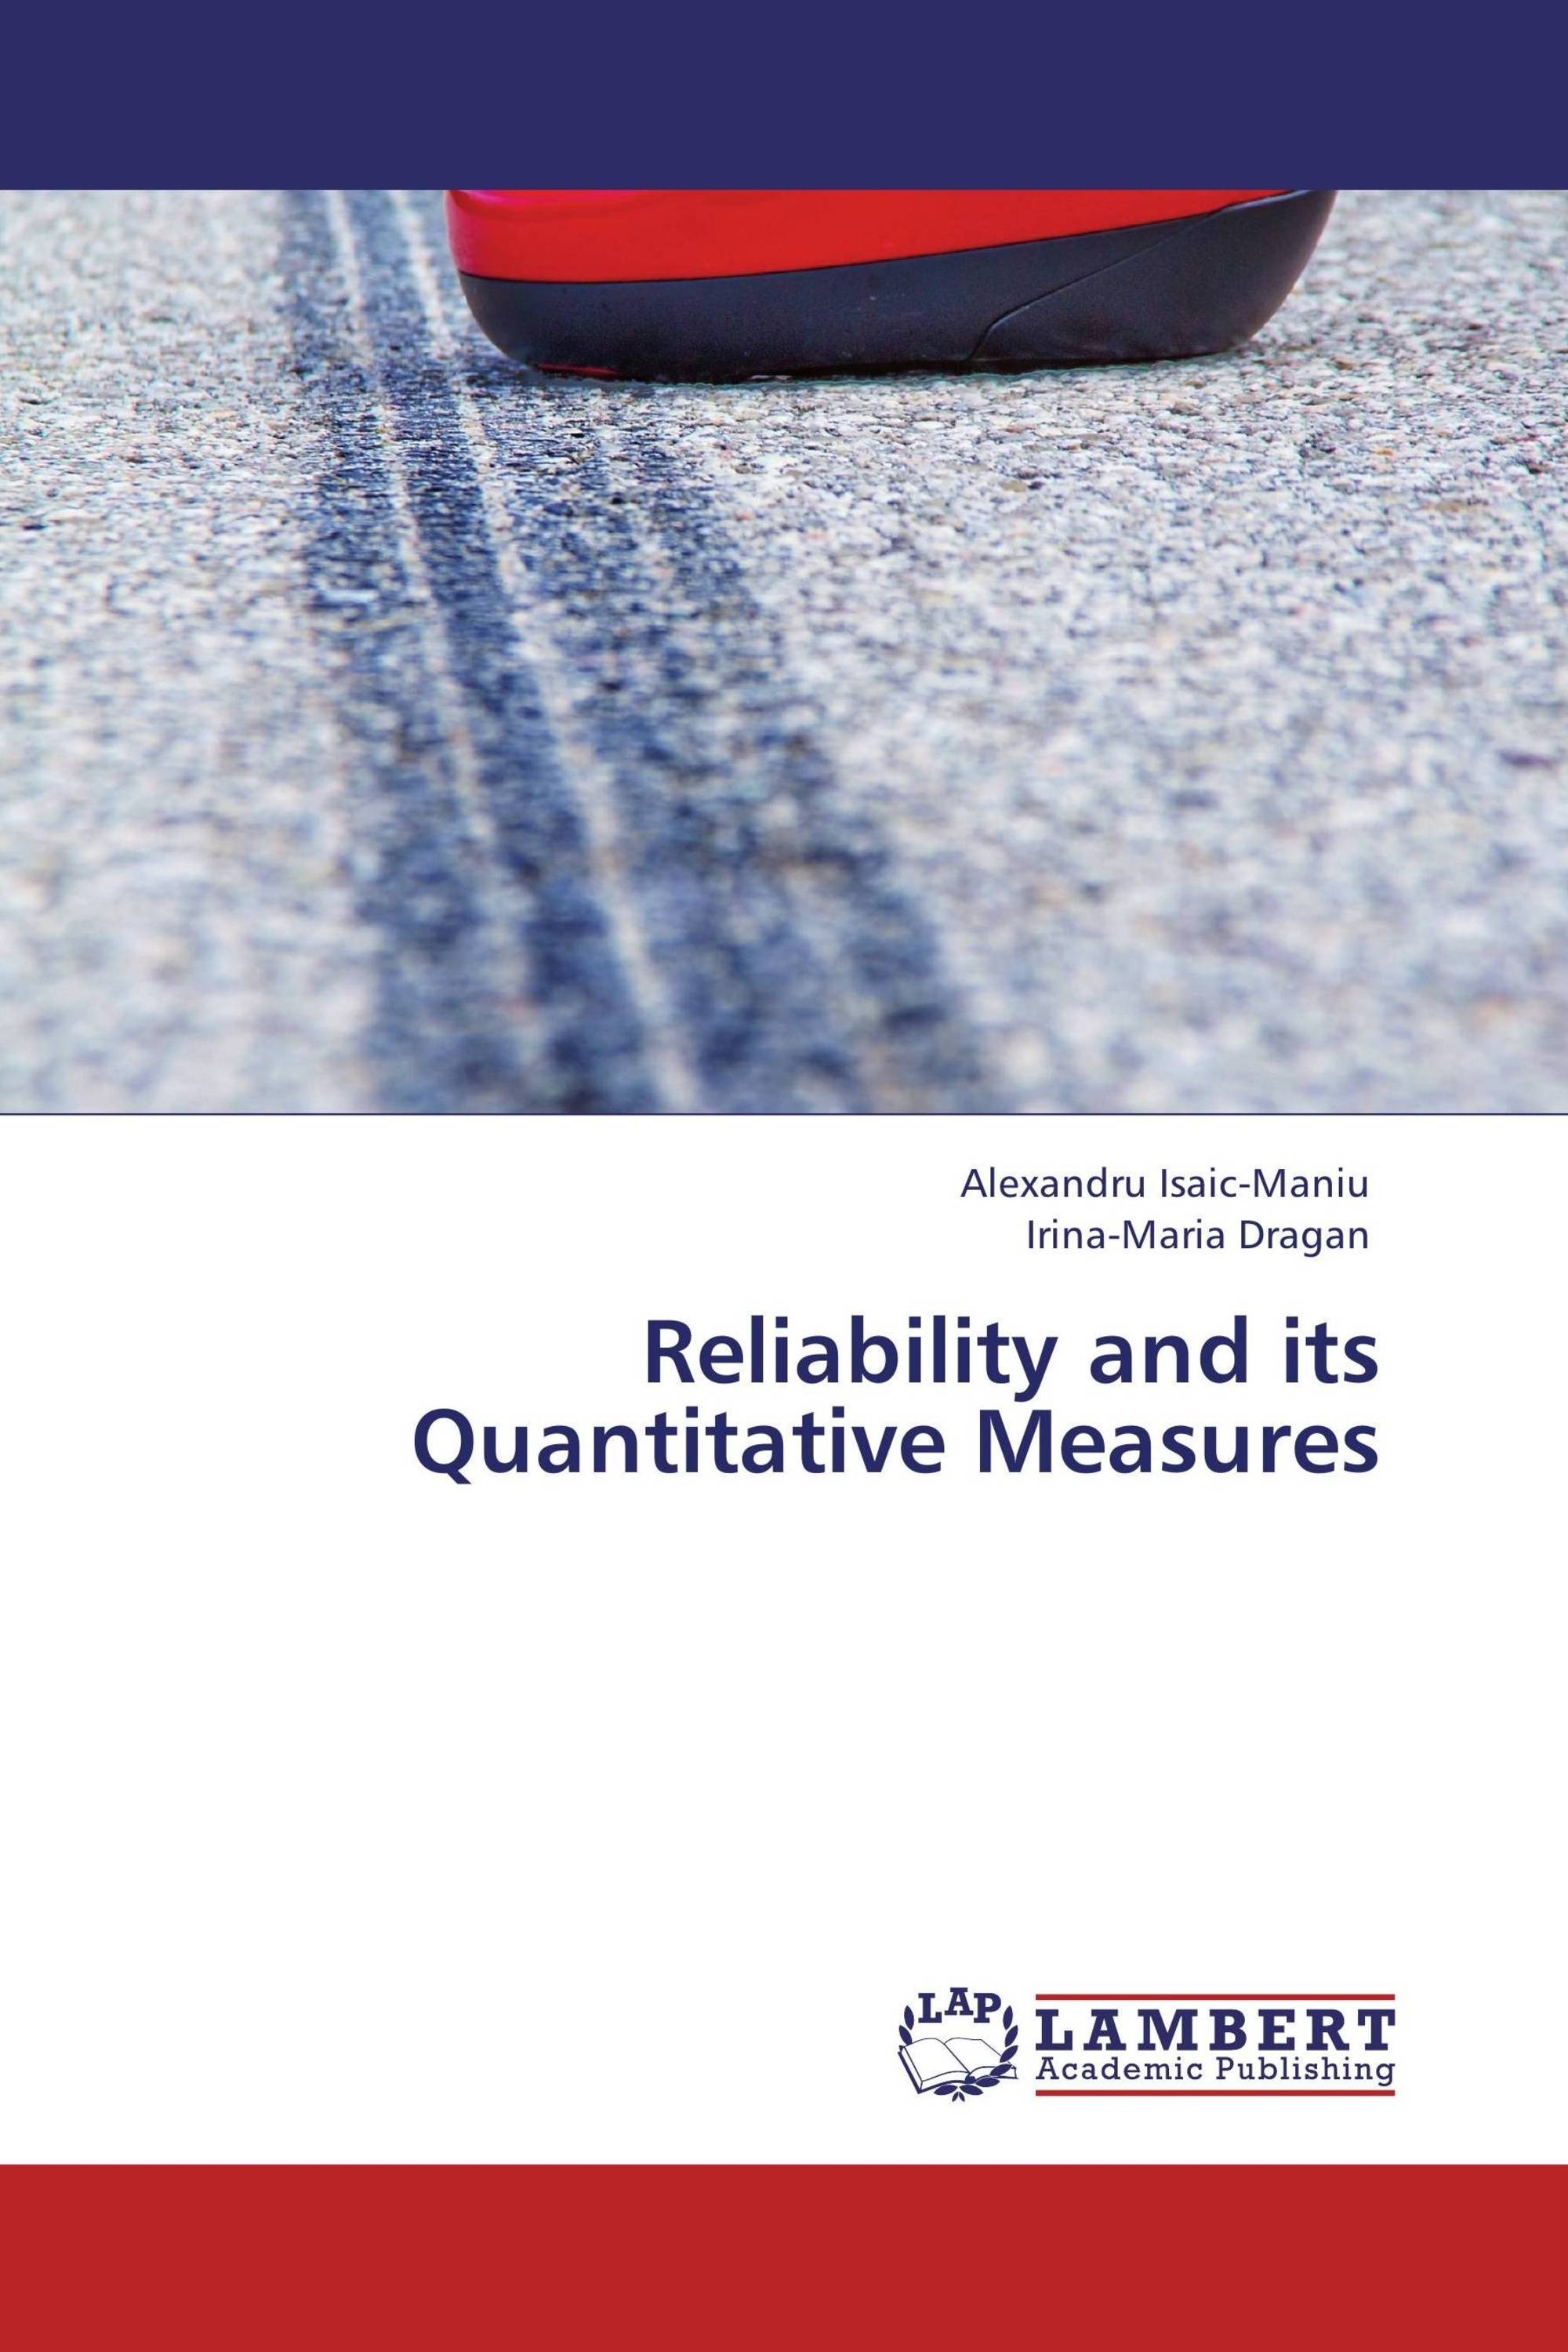 Reliability and its Quantitative Measures